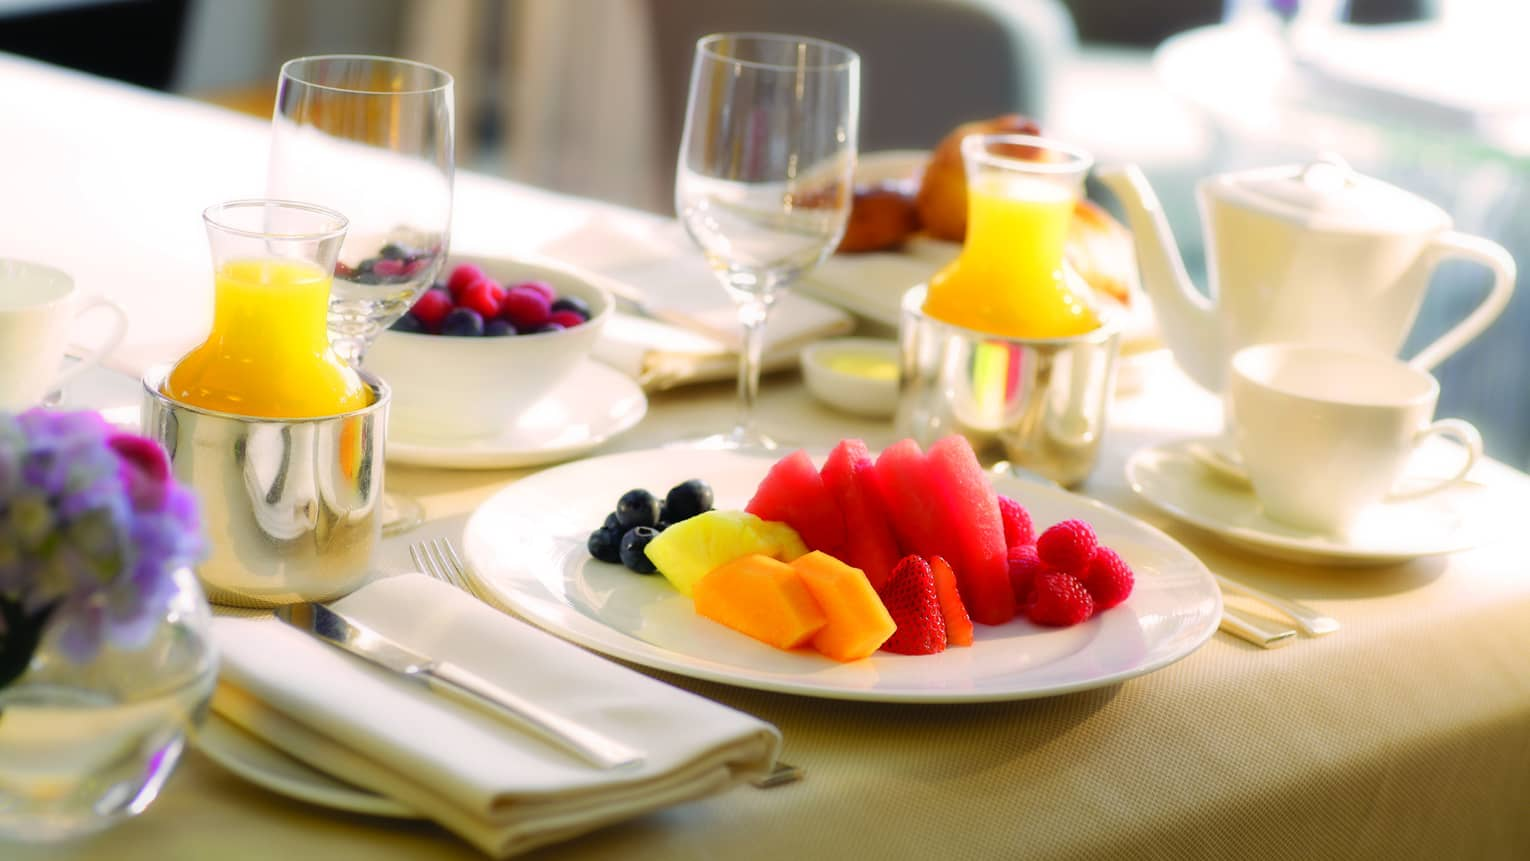 Close-up of in-room dining table service with plate of fresh melon and berries, tea and orange juice